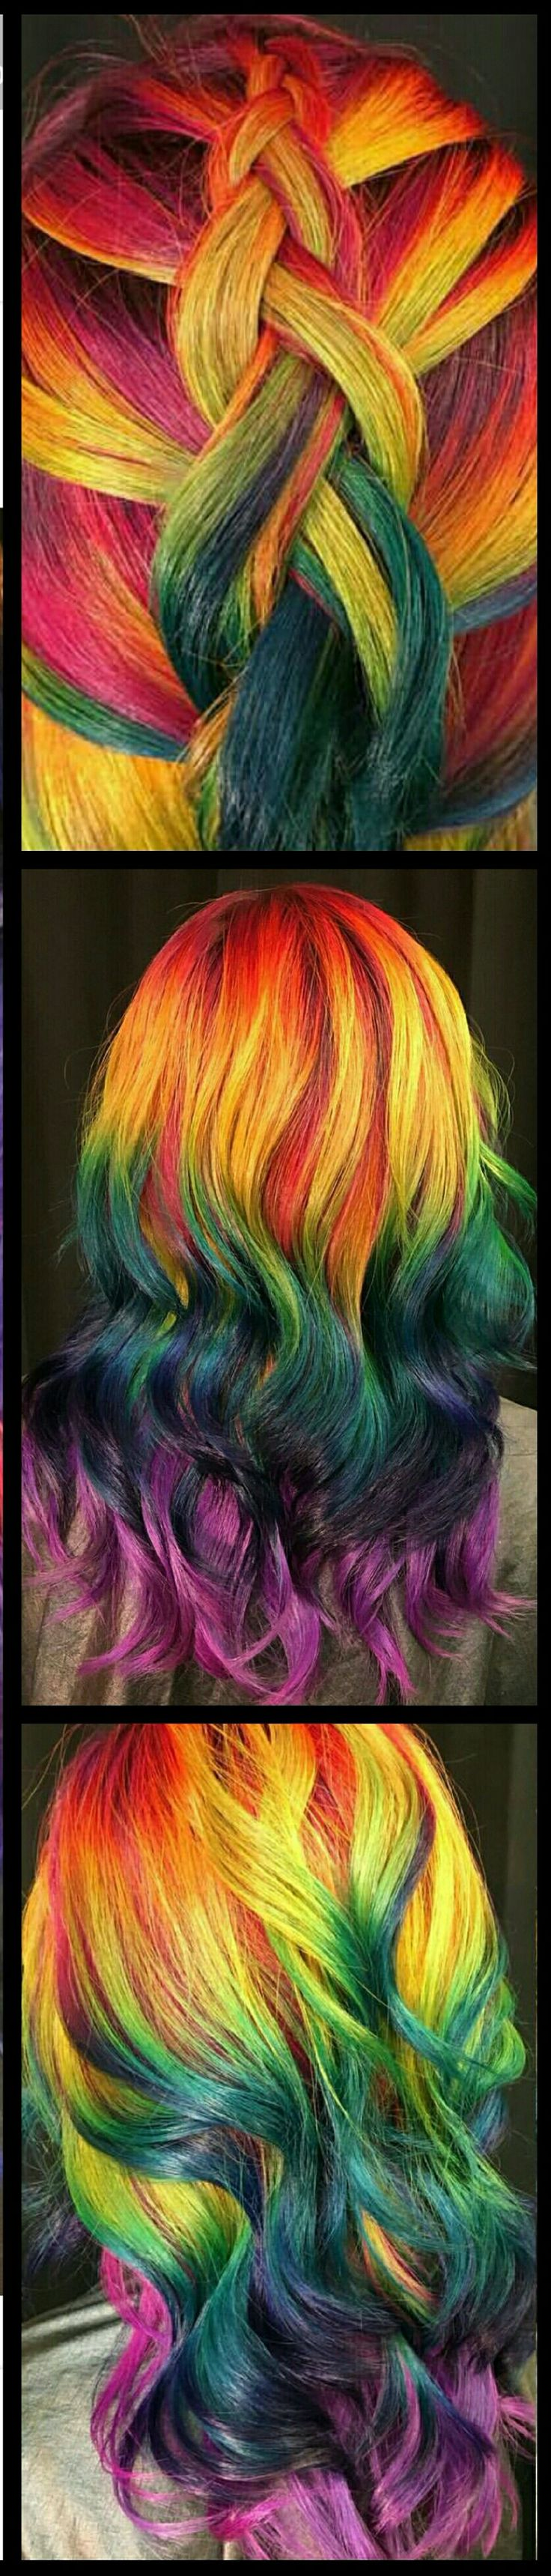 Rainbow dyed hair inspiration @uggoff